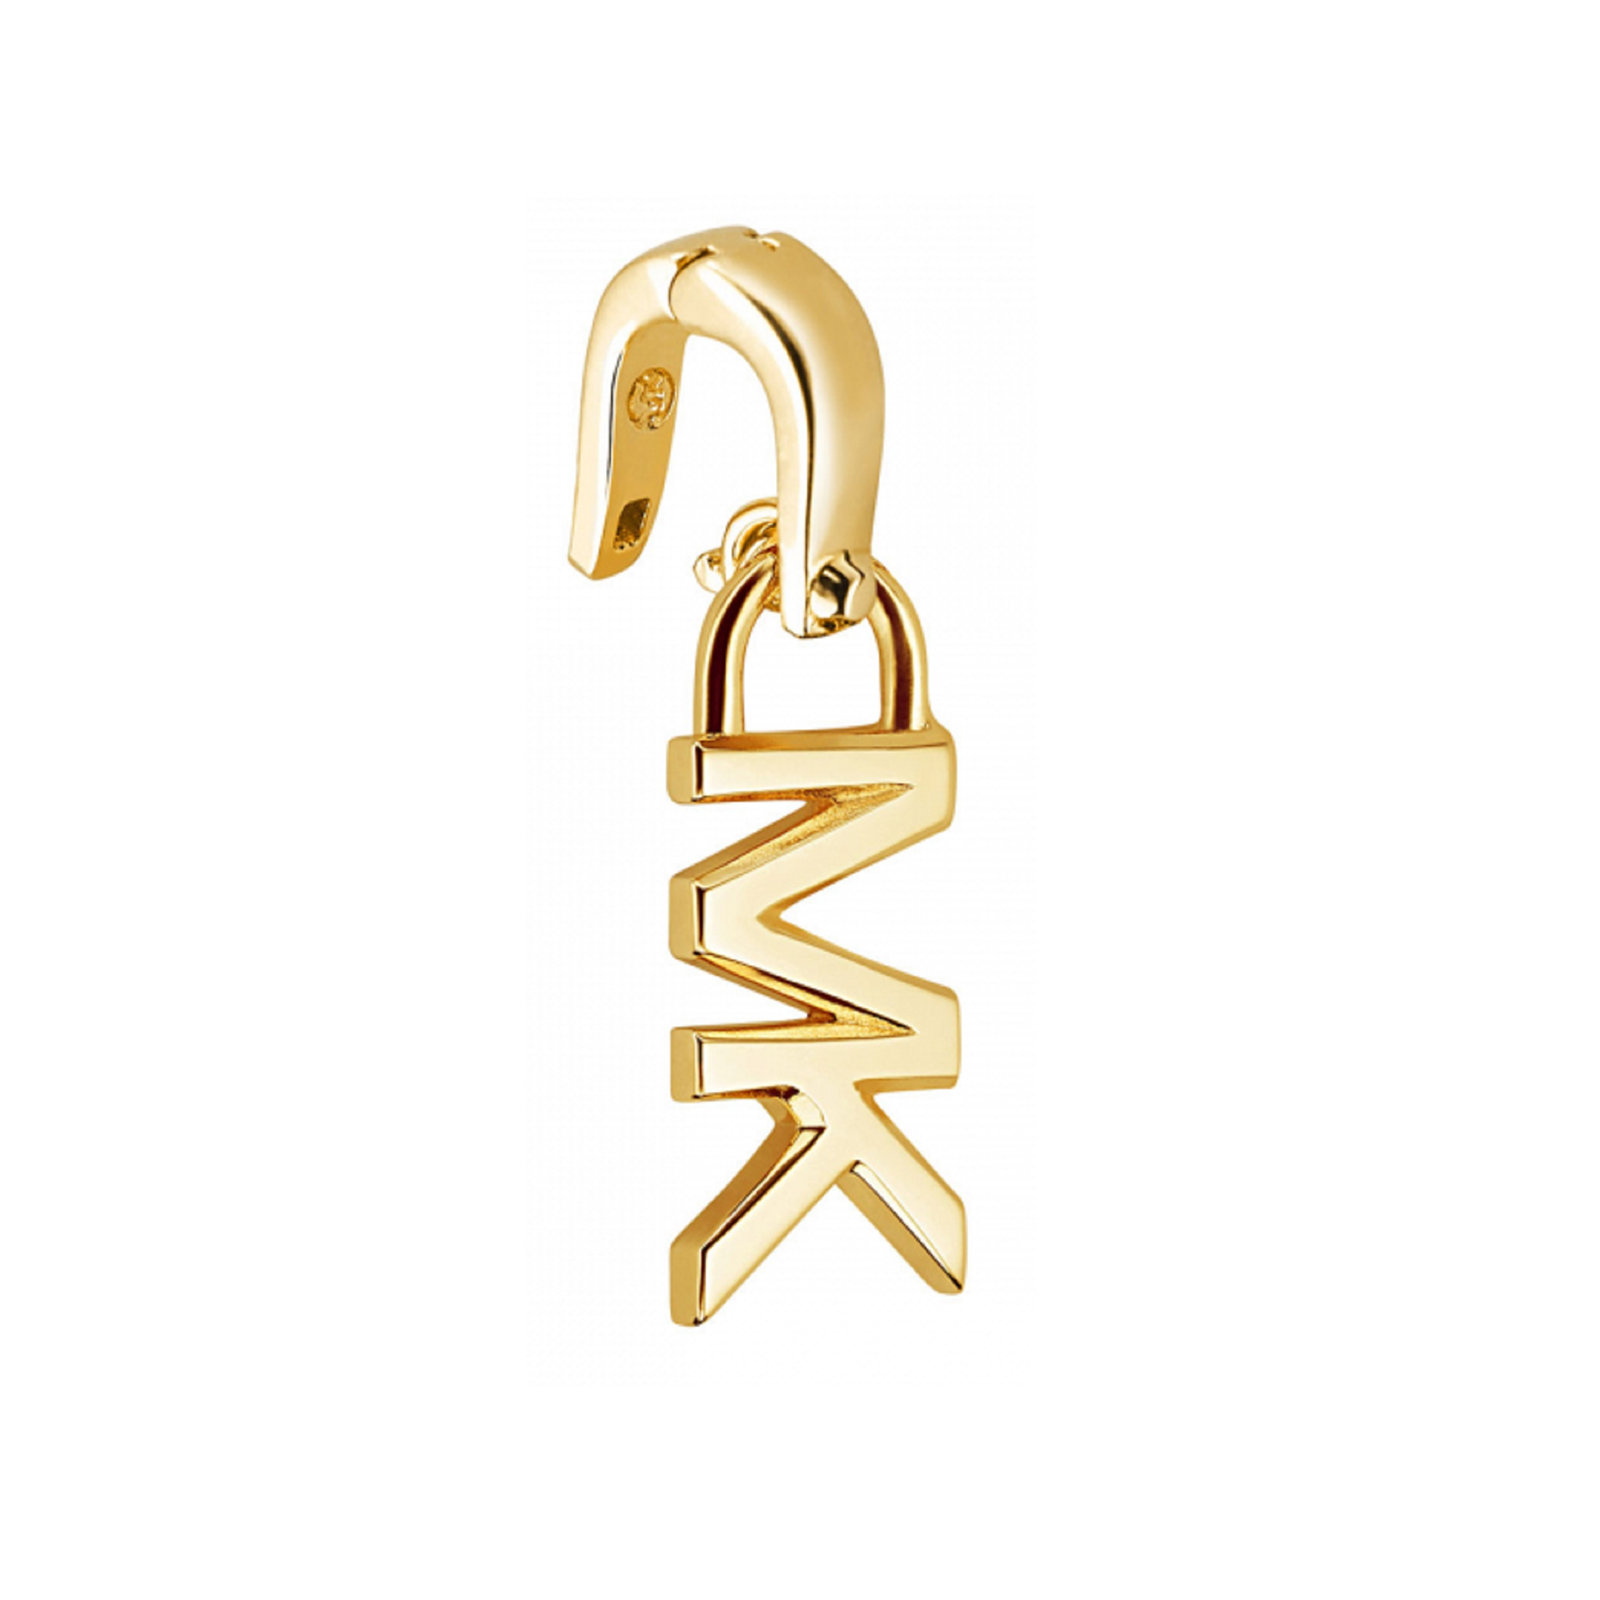 Michael Kors Custom Kors 14ct Gold Plated Logo Charm